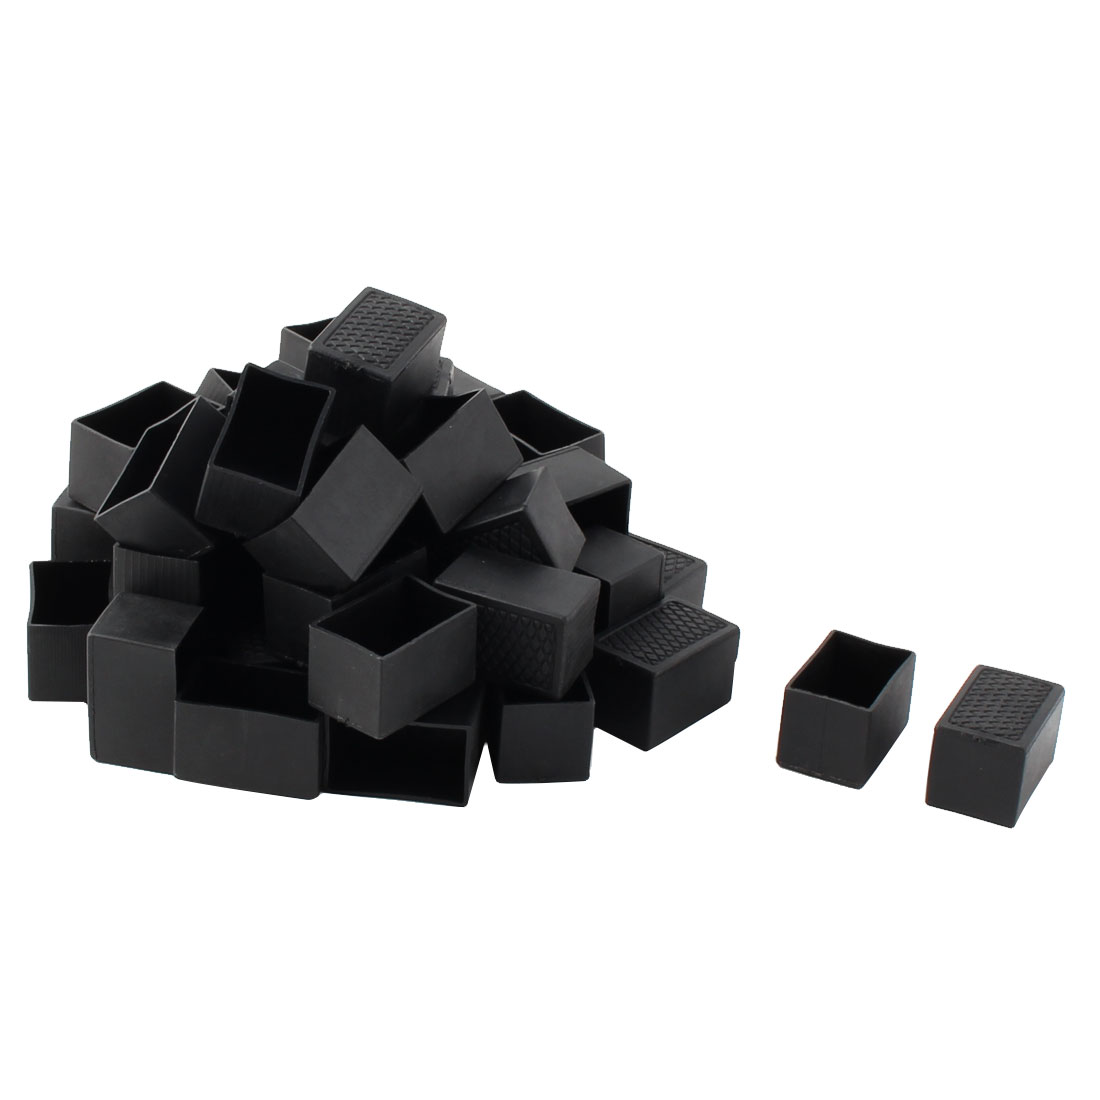 Furniture Chair Table Plastic Tube Insert Protector Caps Black 40mm x 25mm 50pcs